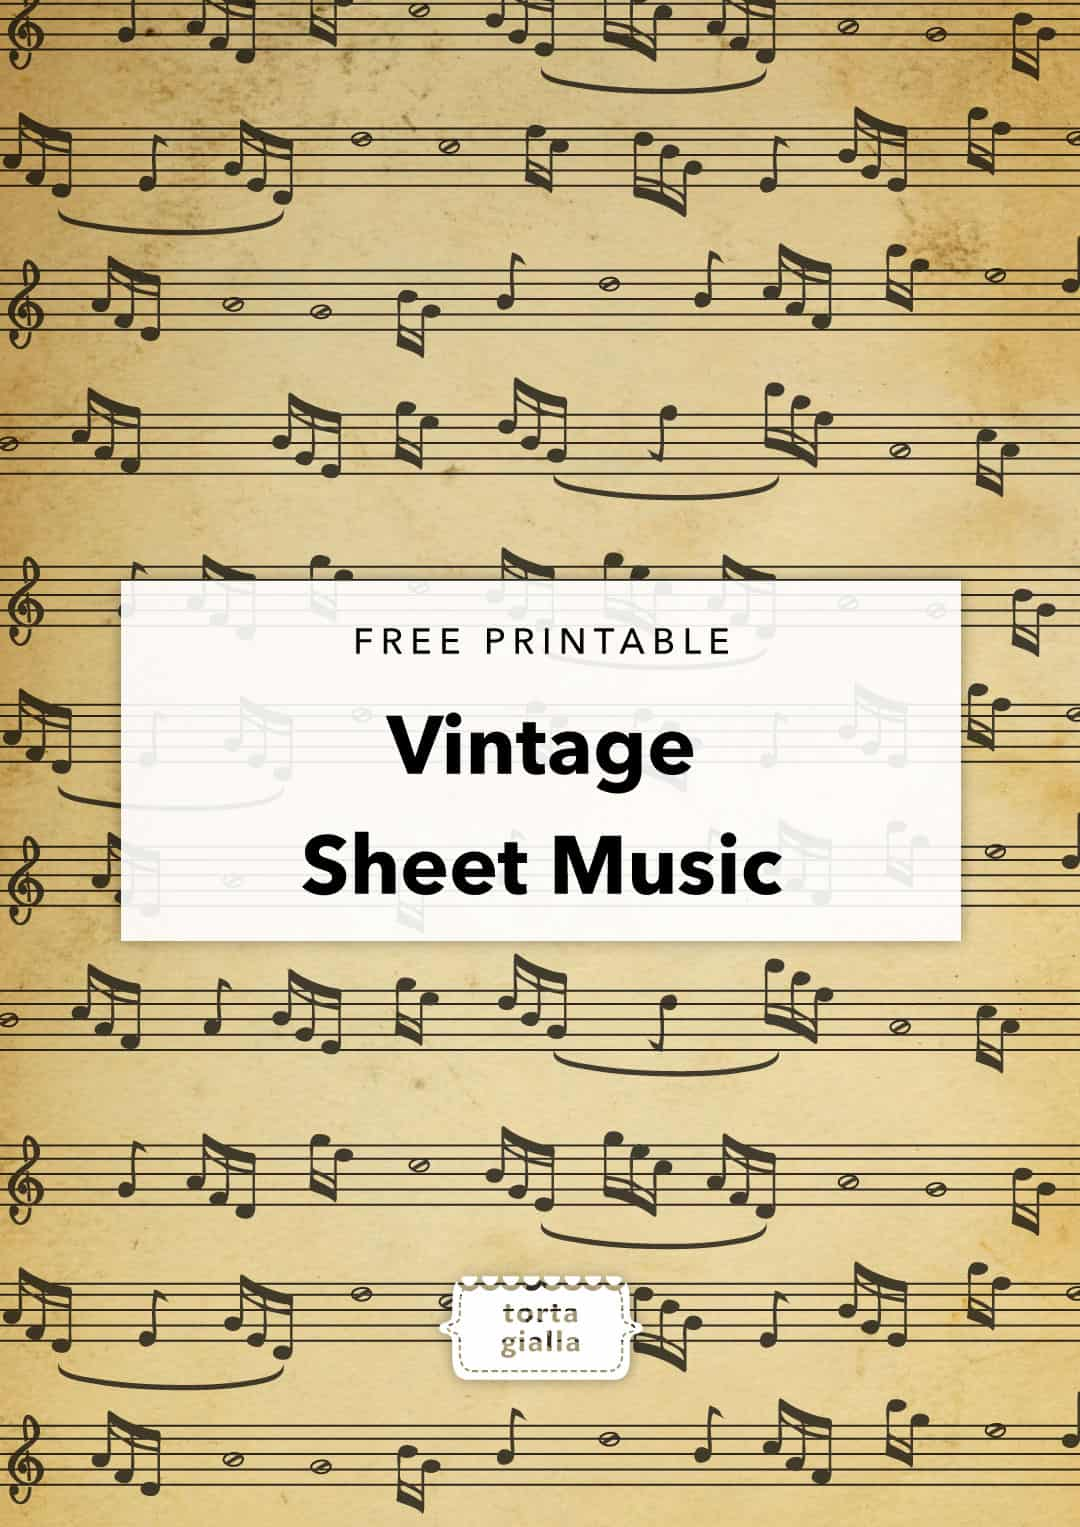 Looking for some free printable vintage sheet music for a project? Download this freebie and start papercrafting!